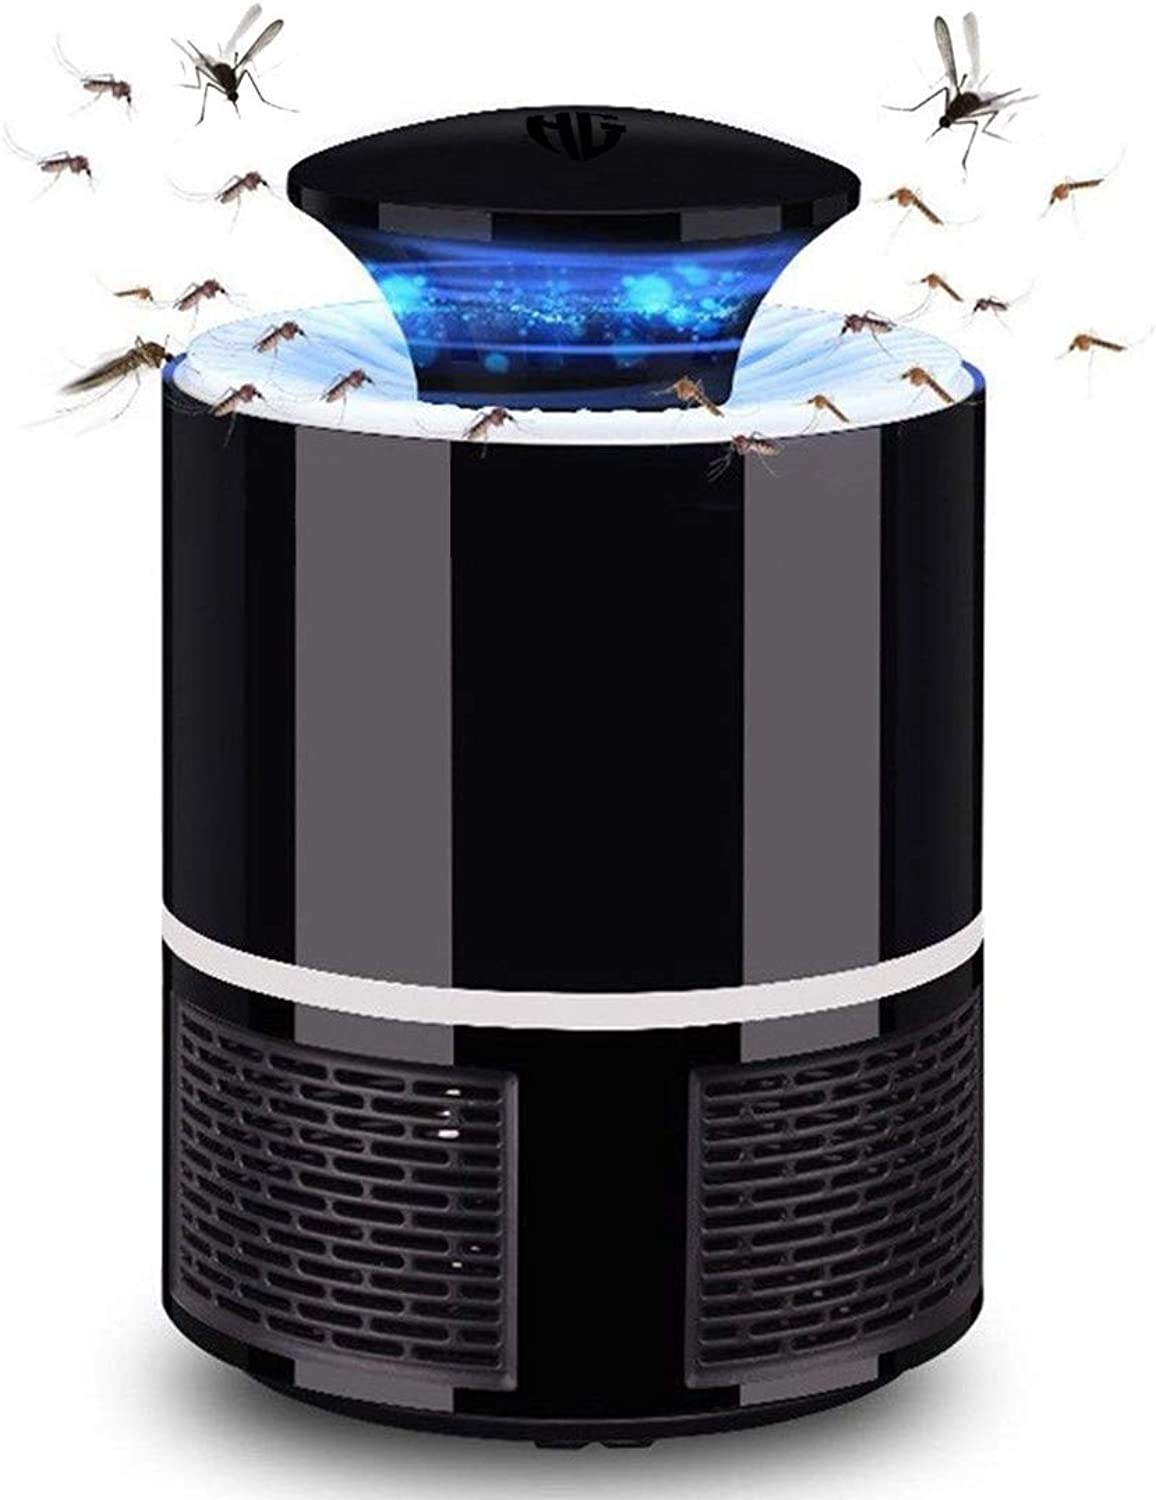 HUNTINGOOD Fly Trap Electric Mosquito Insect Killer Bug Zapper with 360 Degrees LED Trap LampStrong Built in Suction FanUSB Power SupplyChemicalFree and Quite for Indoor (Black White) (Black)